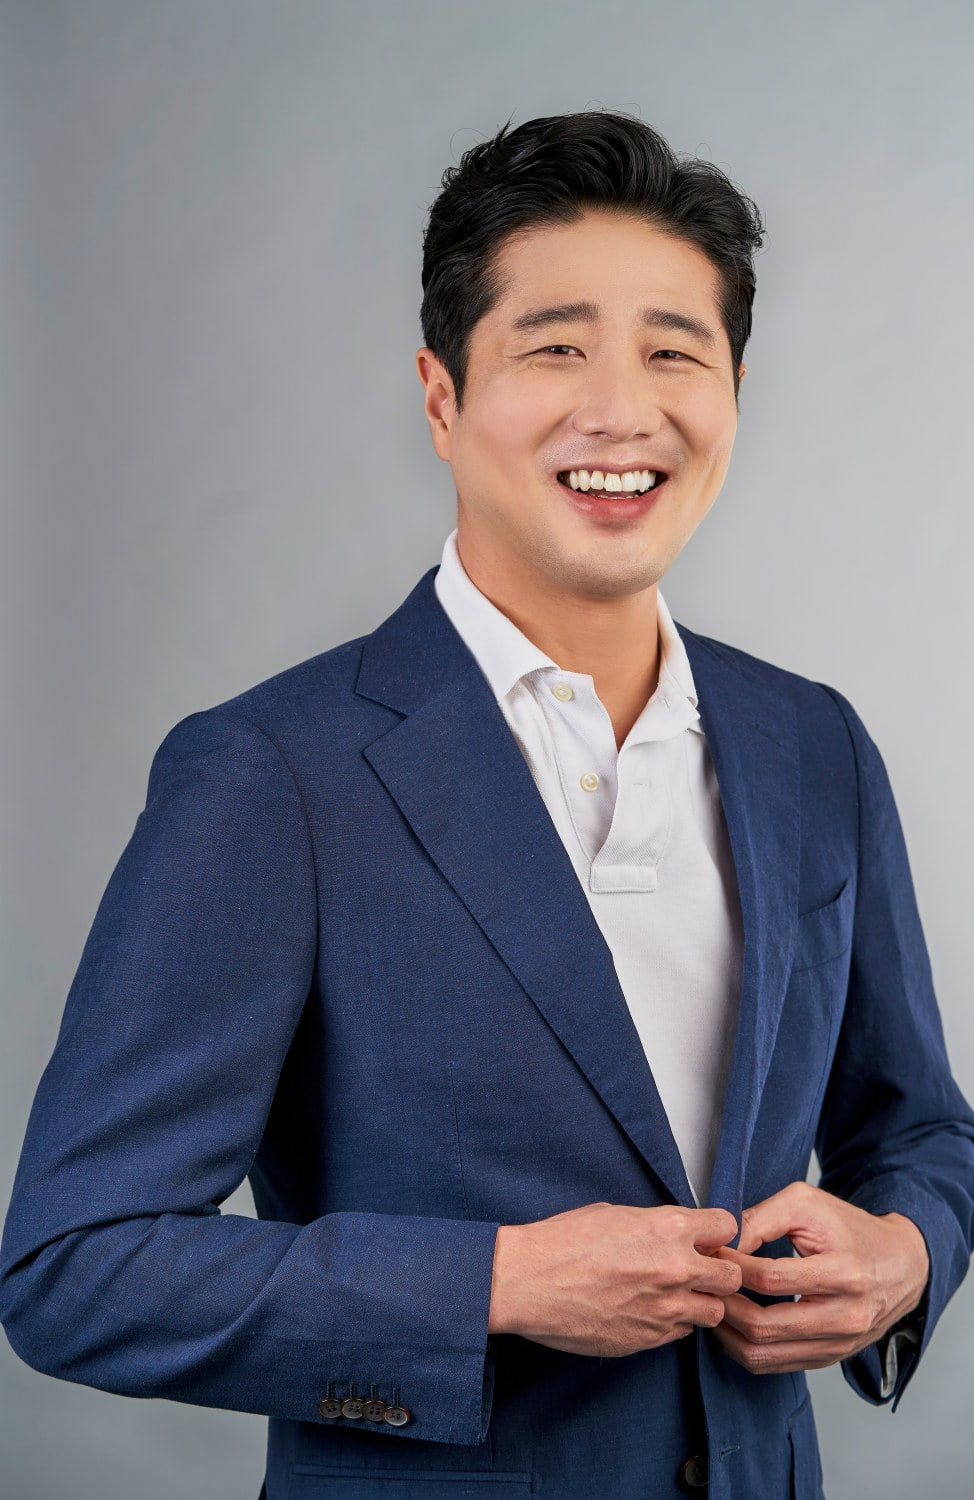 portrait photography singapore a photo of a man in a blue blazer in a studio